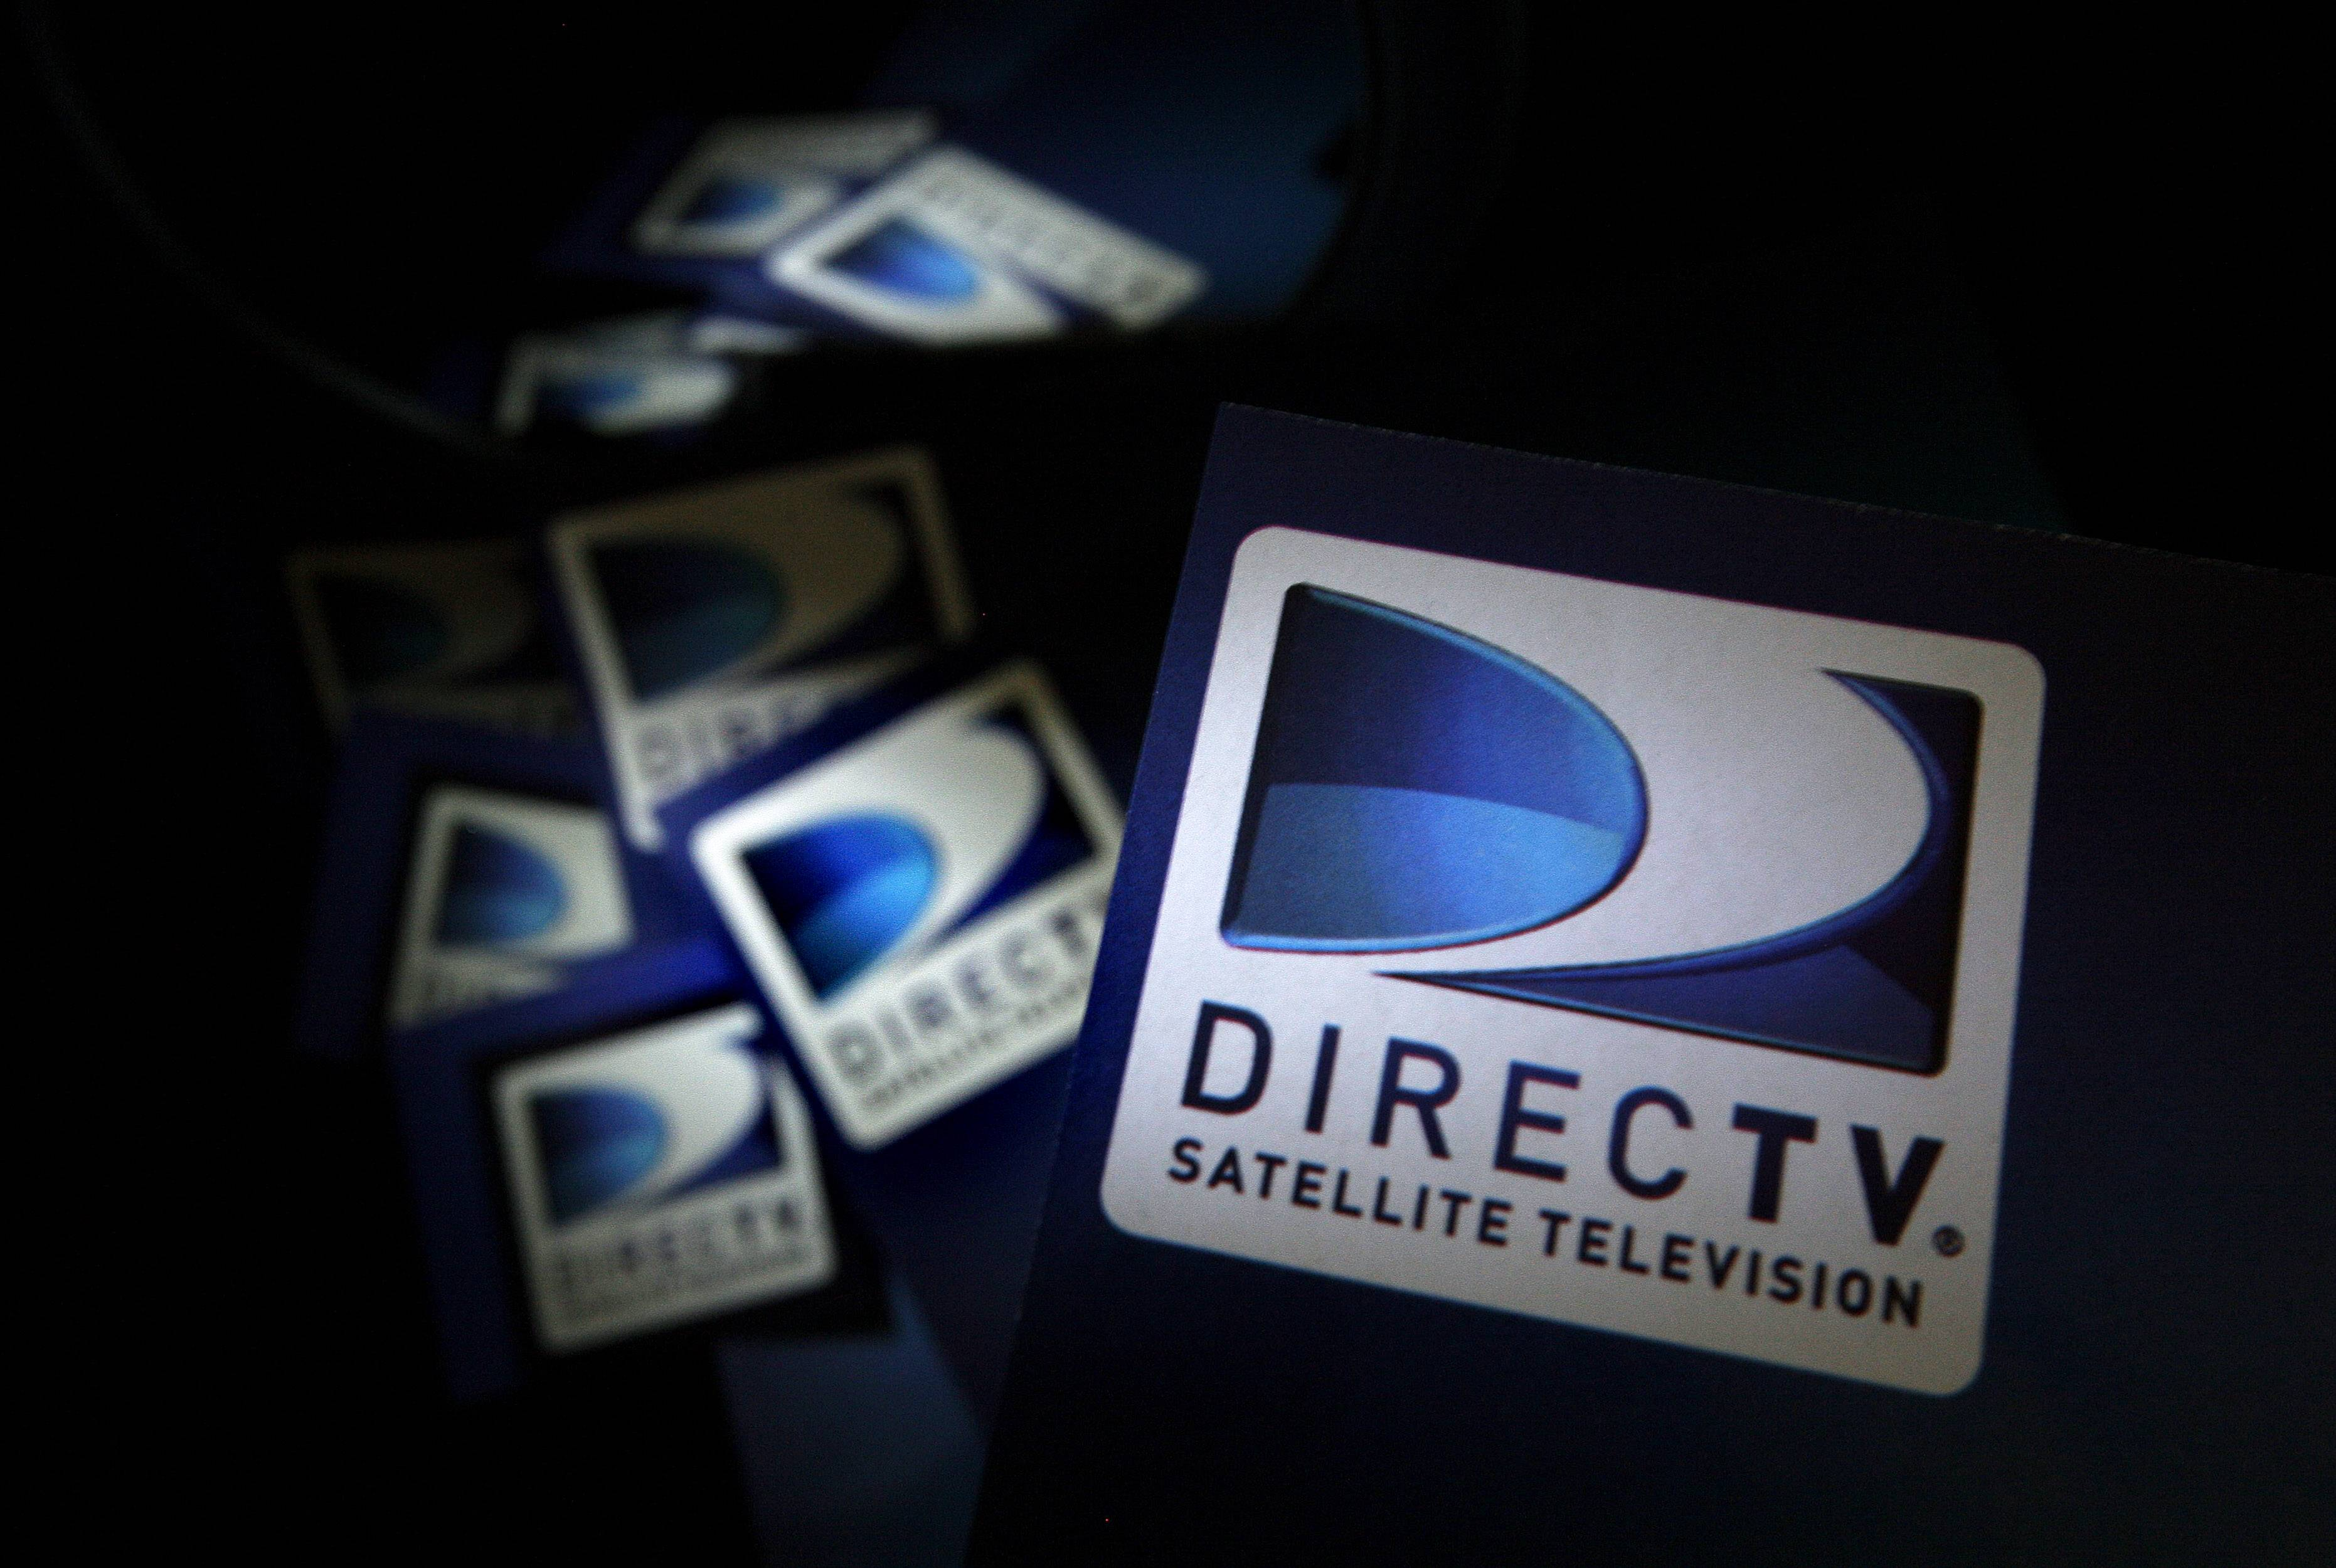 AT&T said Sunday it is buying DirecTV for $95 per share, or $49 billion.